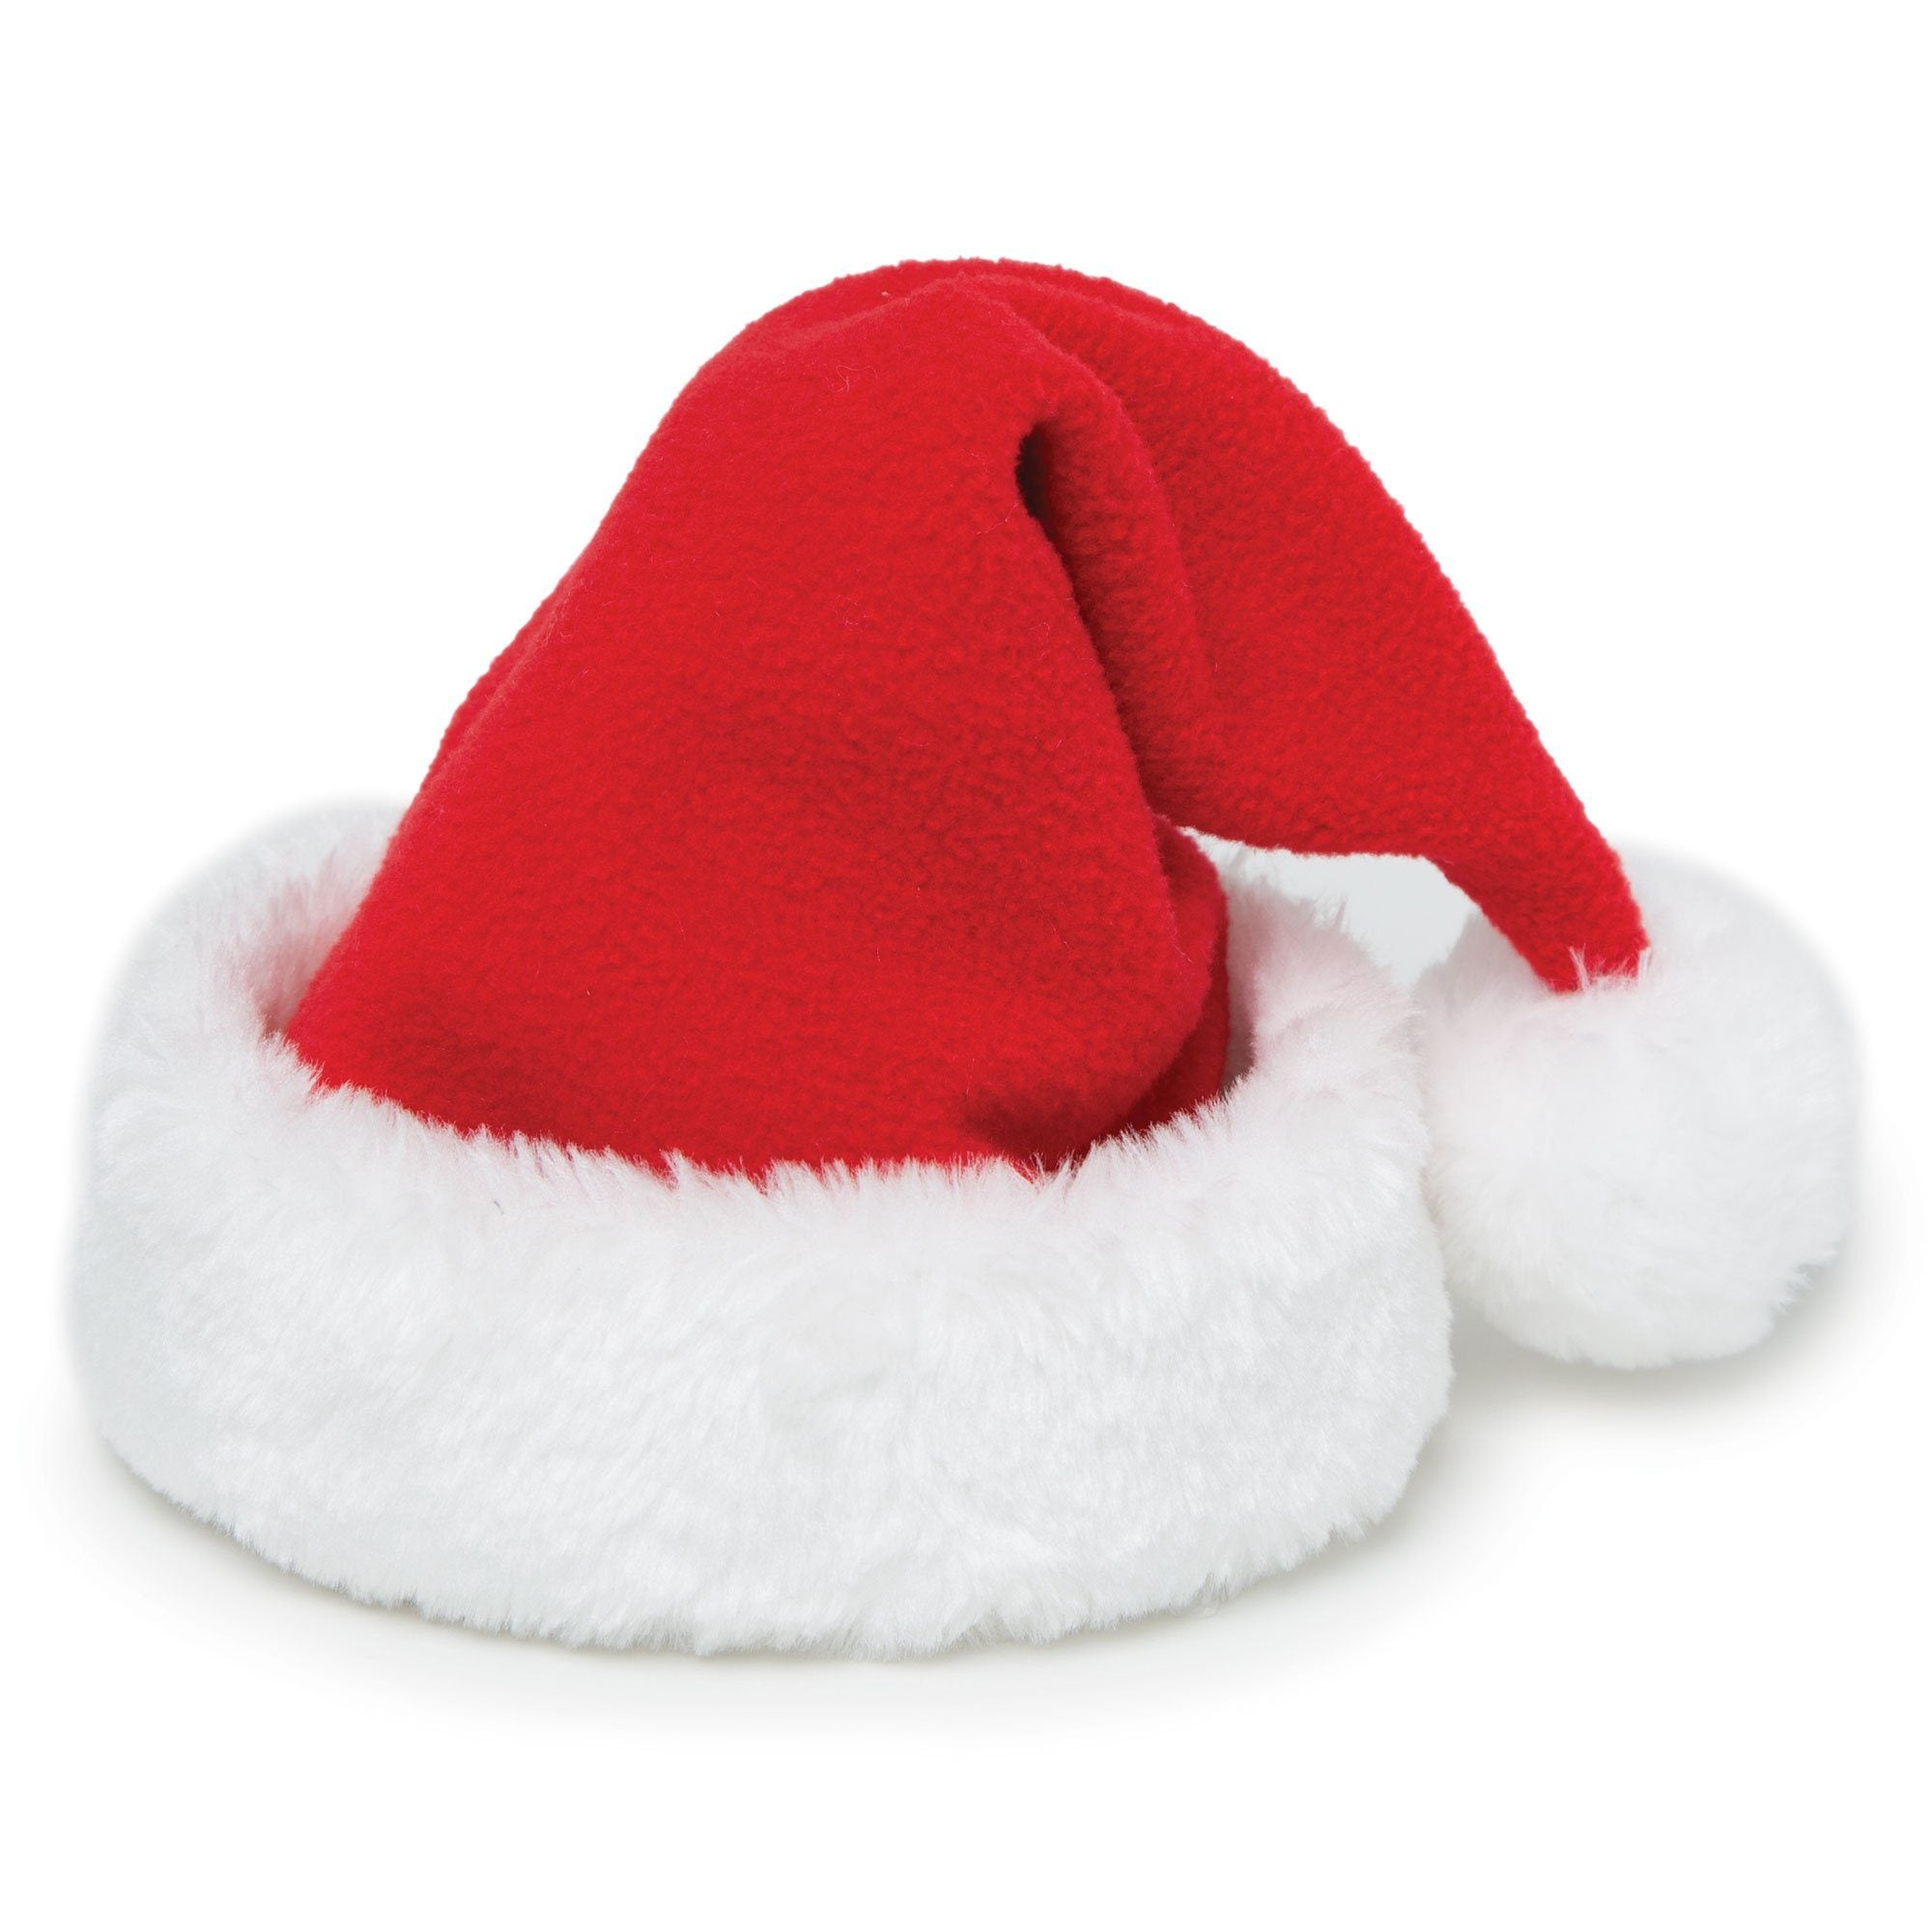 Christmas Traditions Santa hat for all 18 inch dolls